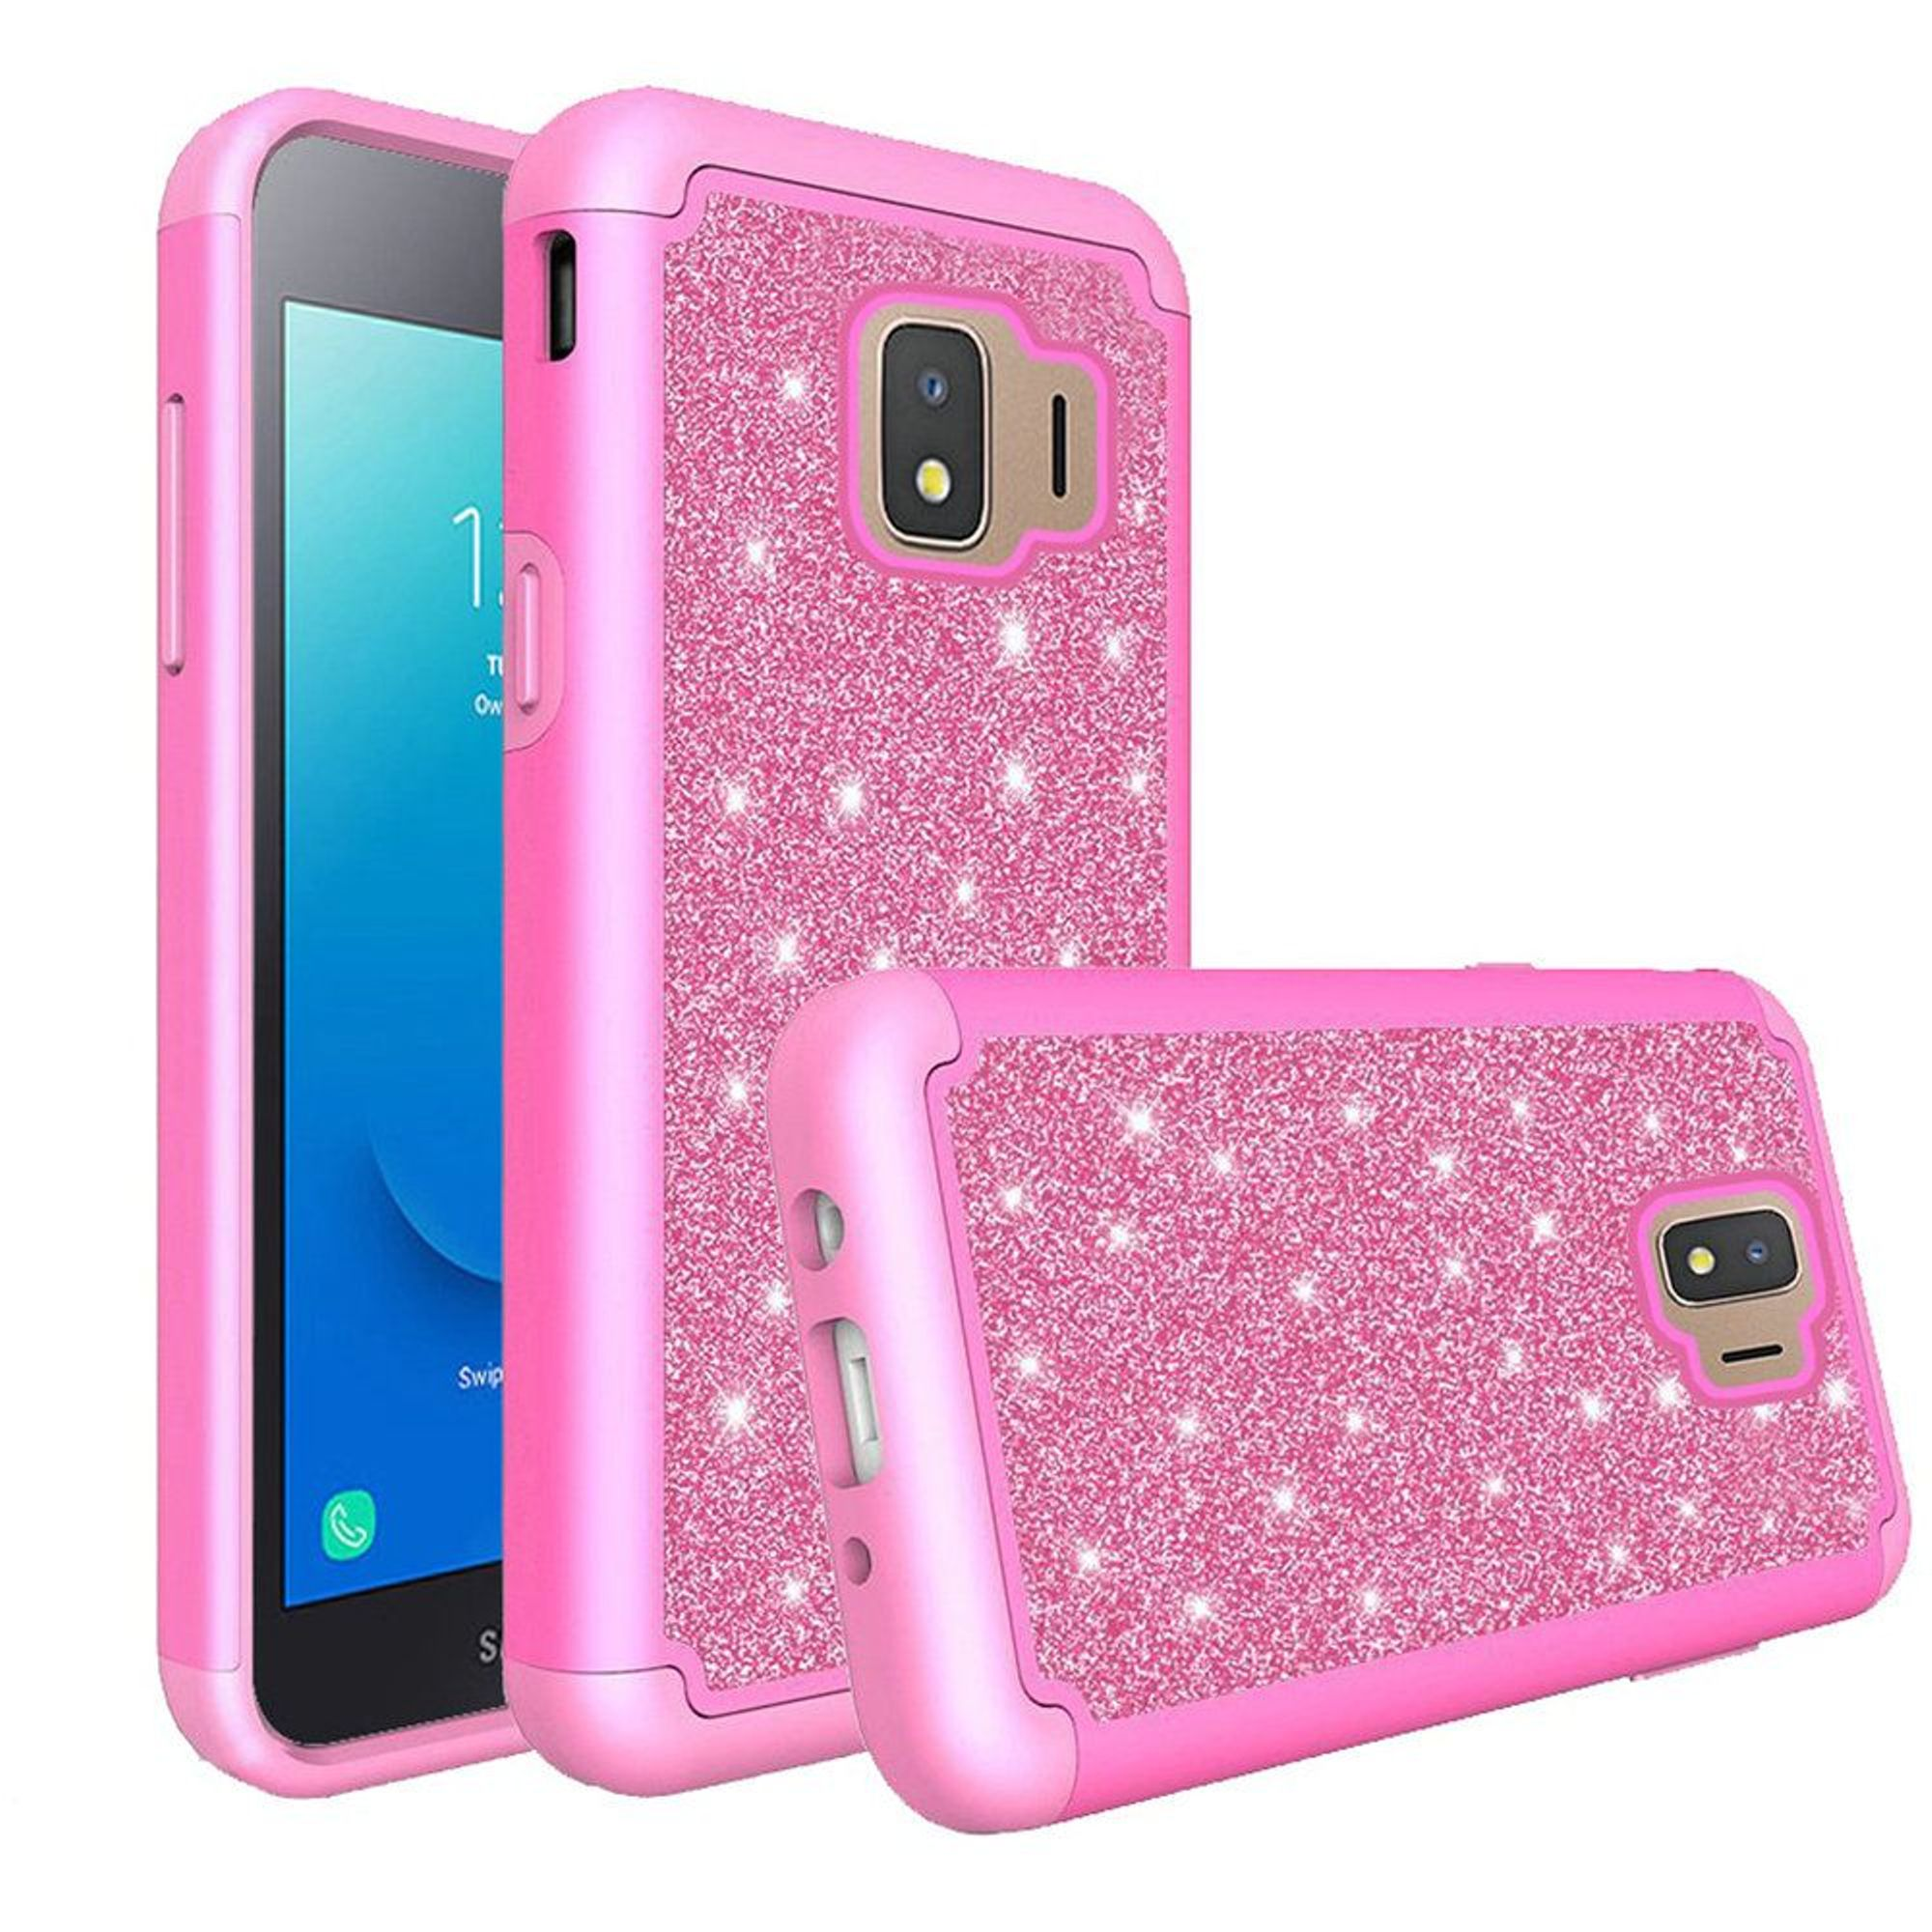 Samsung Galaxy J2 (2019) Case, by Insten Tough Glitter Bling Diamond Dual Layer Hybrid PC/TPU Rubber Case Cover For Samsung Galaxy J2 (2019) - Hot Pink